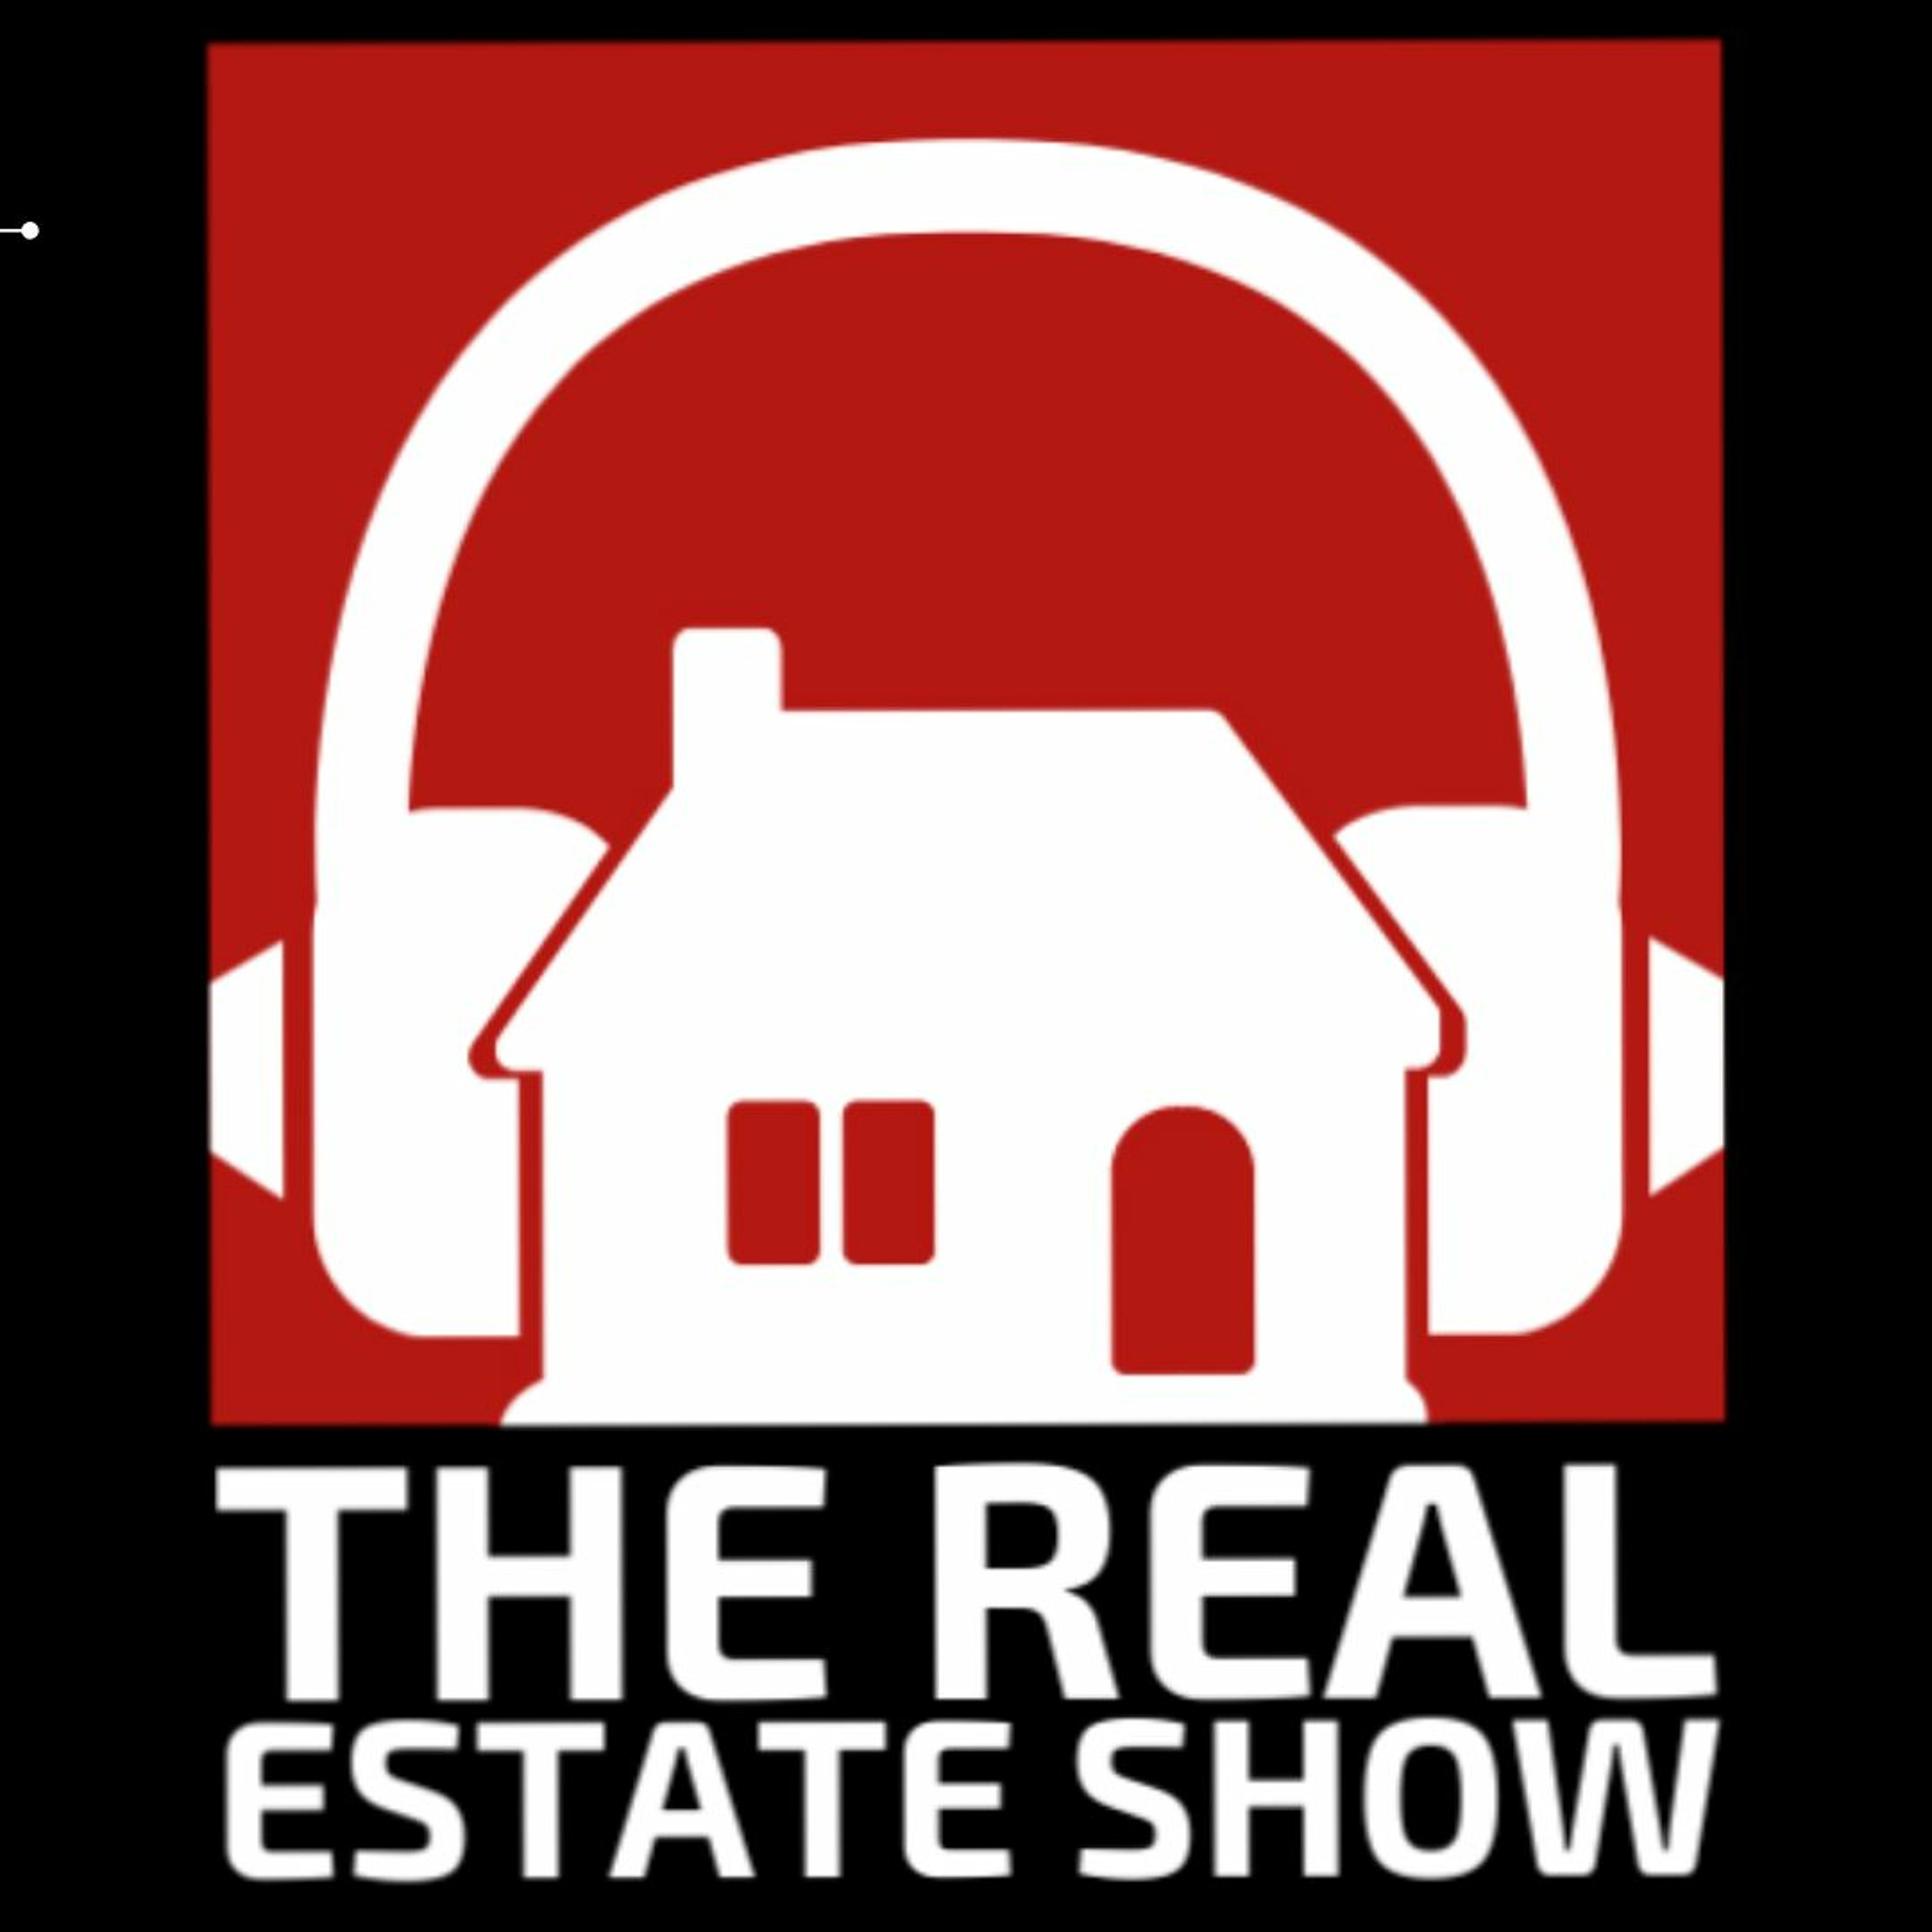 The State Of Real Estate Midway Through 2021 | The Real Estate Show